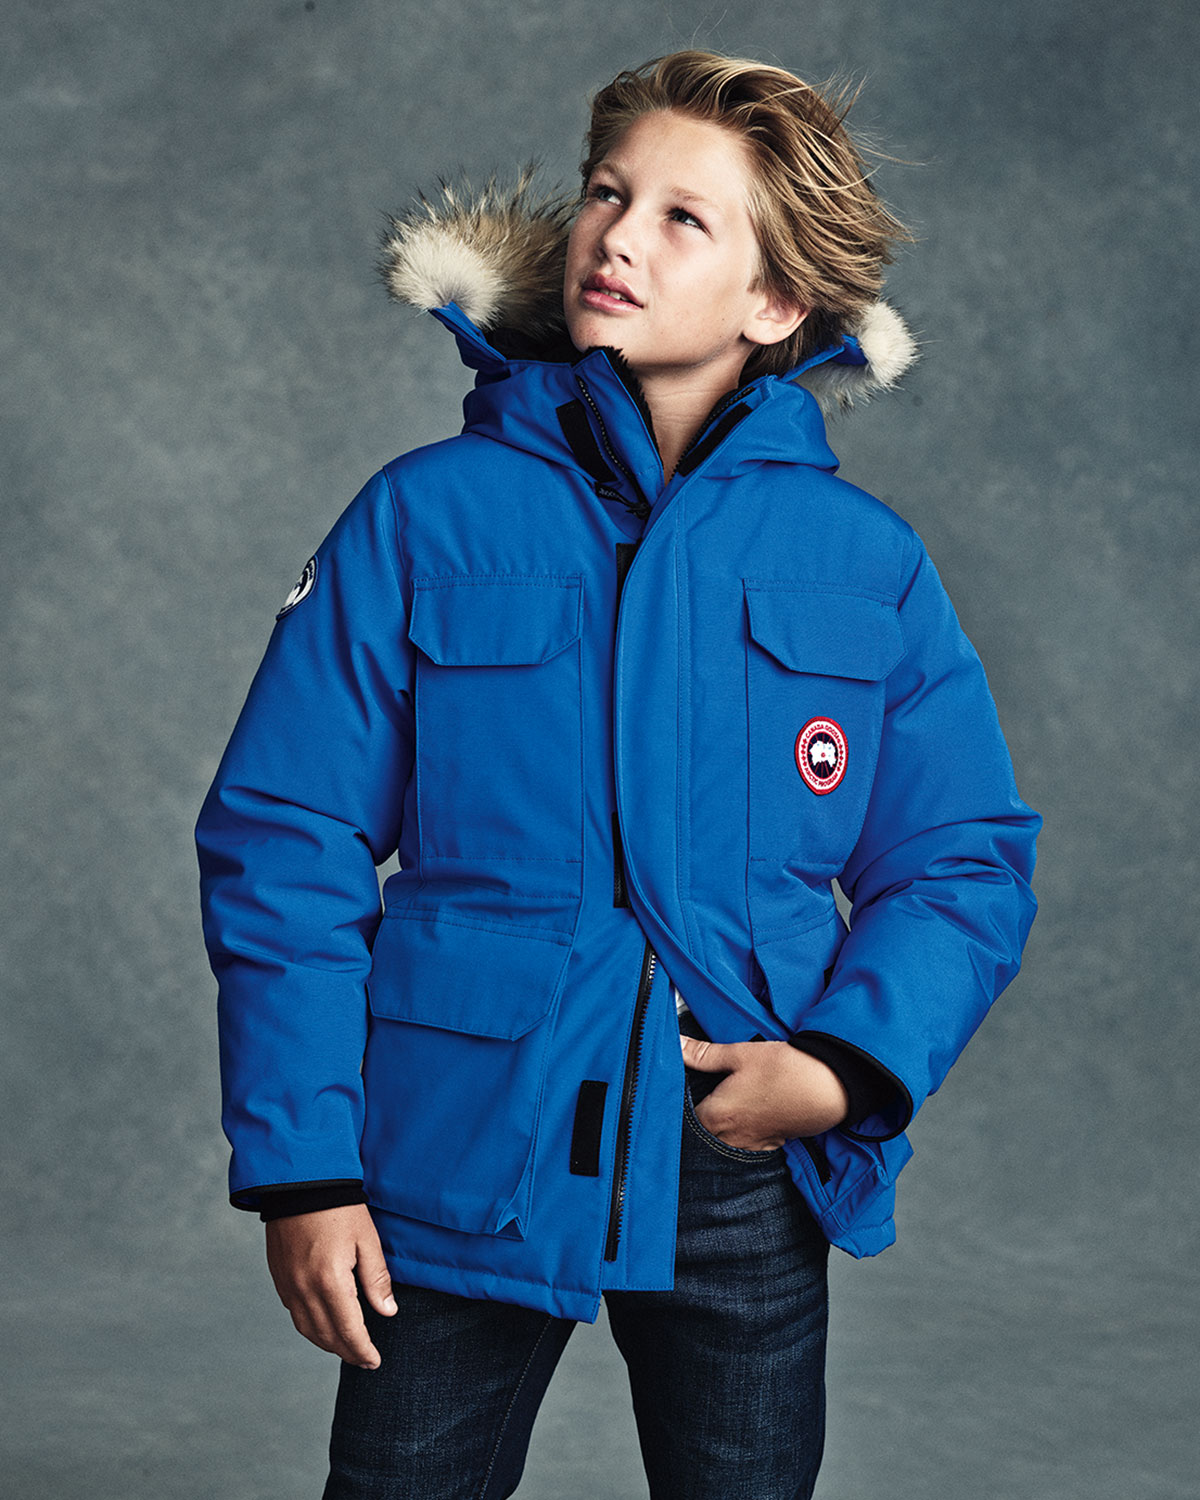 d7cecdfa9c1 Canada Goose PBI Expedition Hooded Parka, Royal Blue, Size XS-XL | Neiman  Marcus